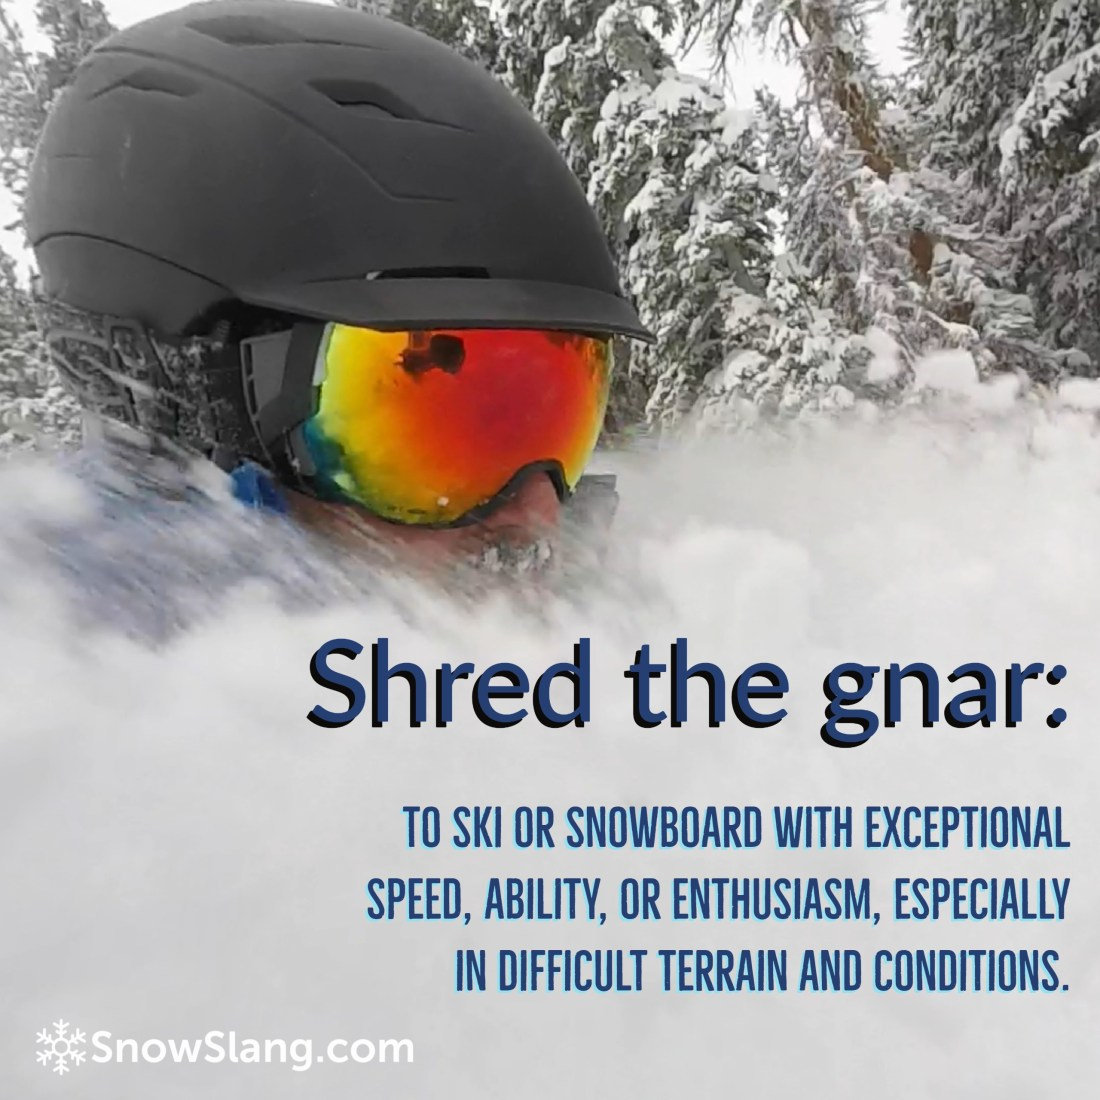 Shred the gnar meaning new square